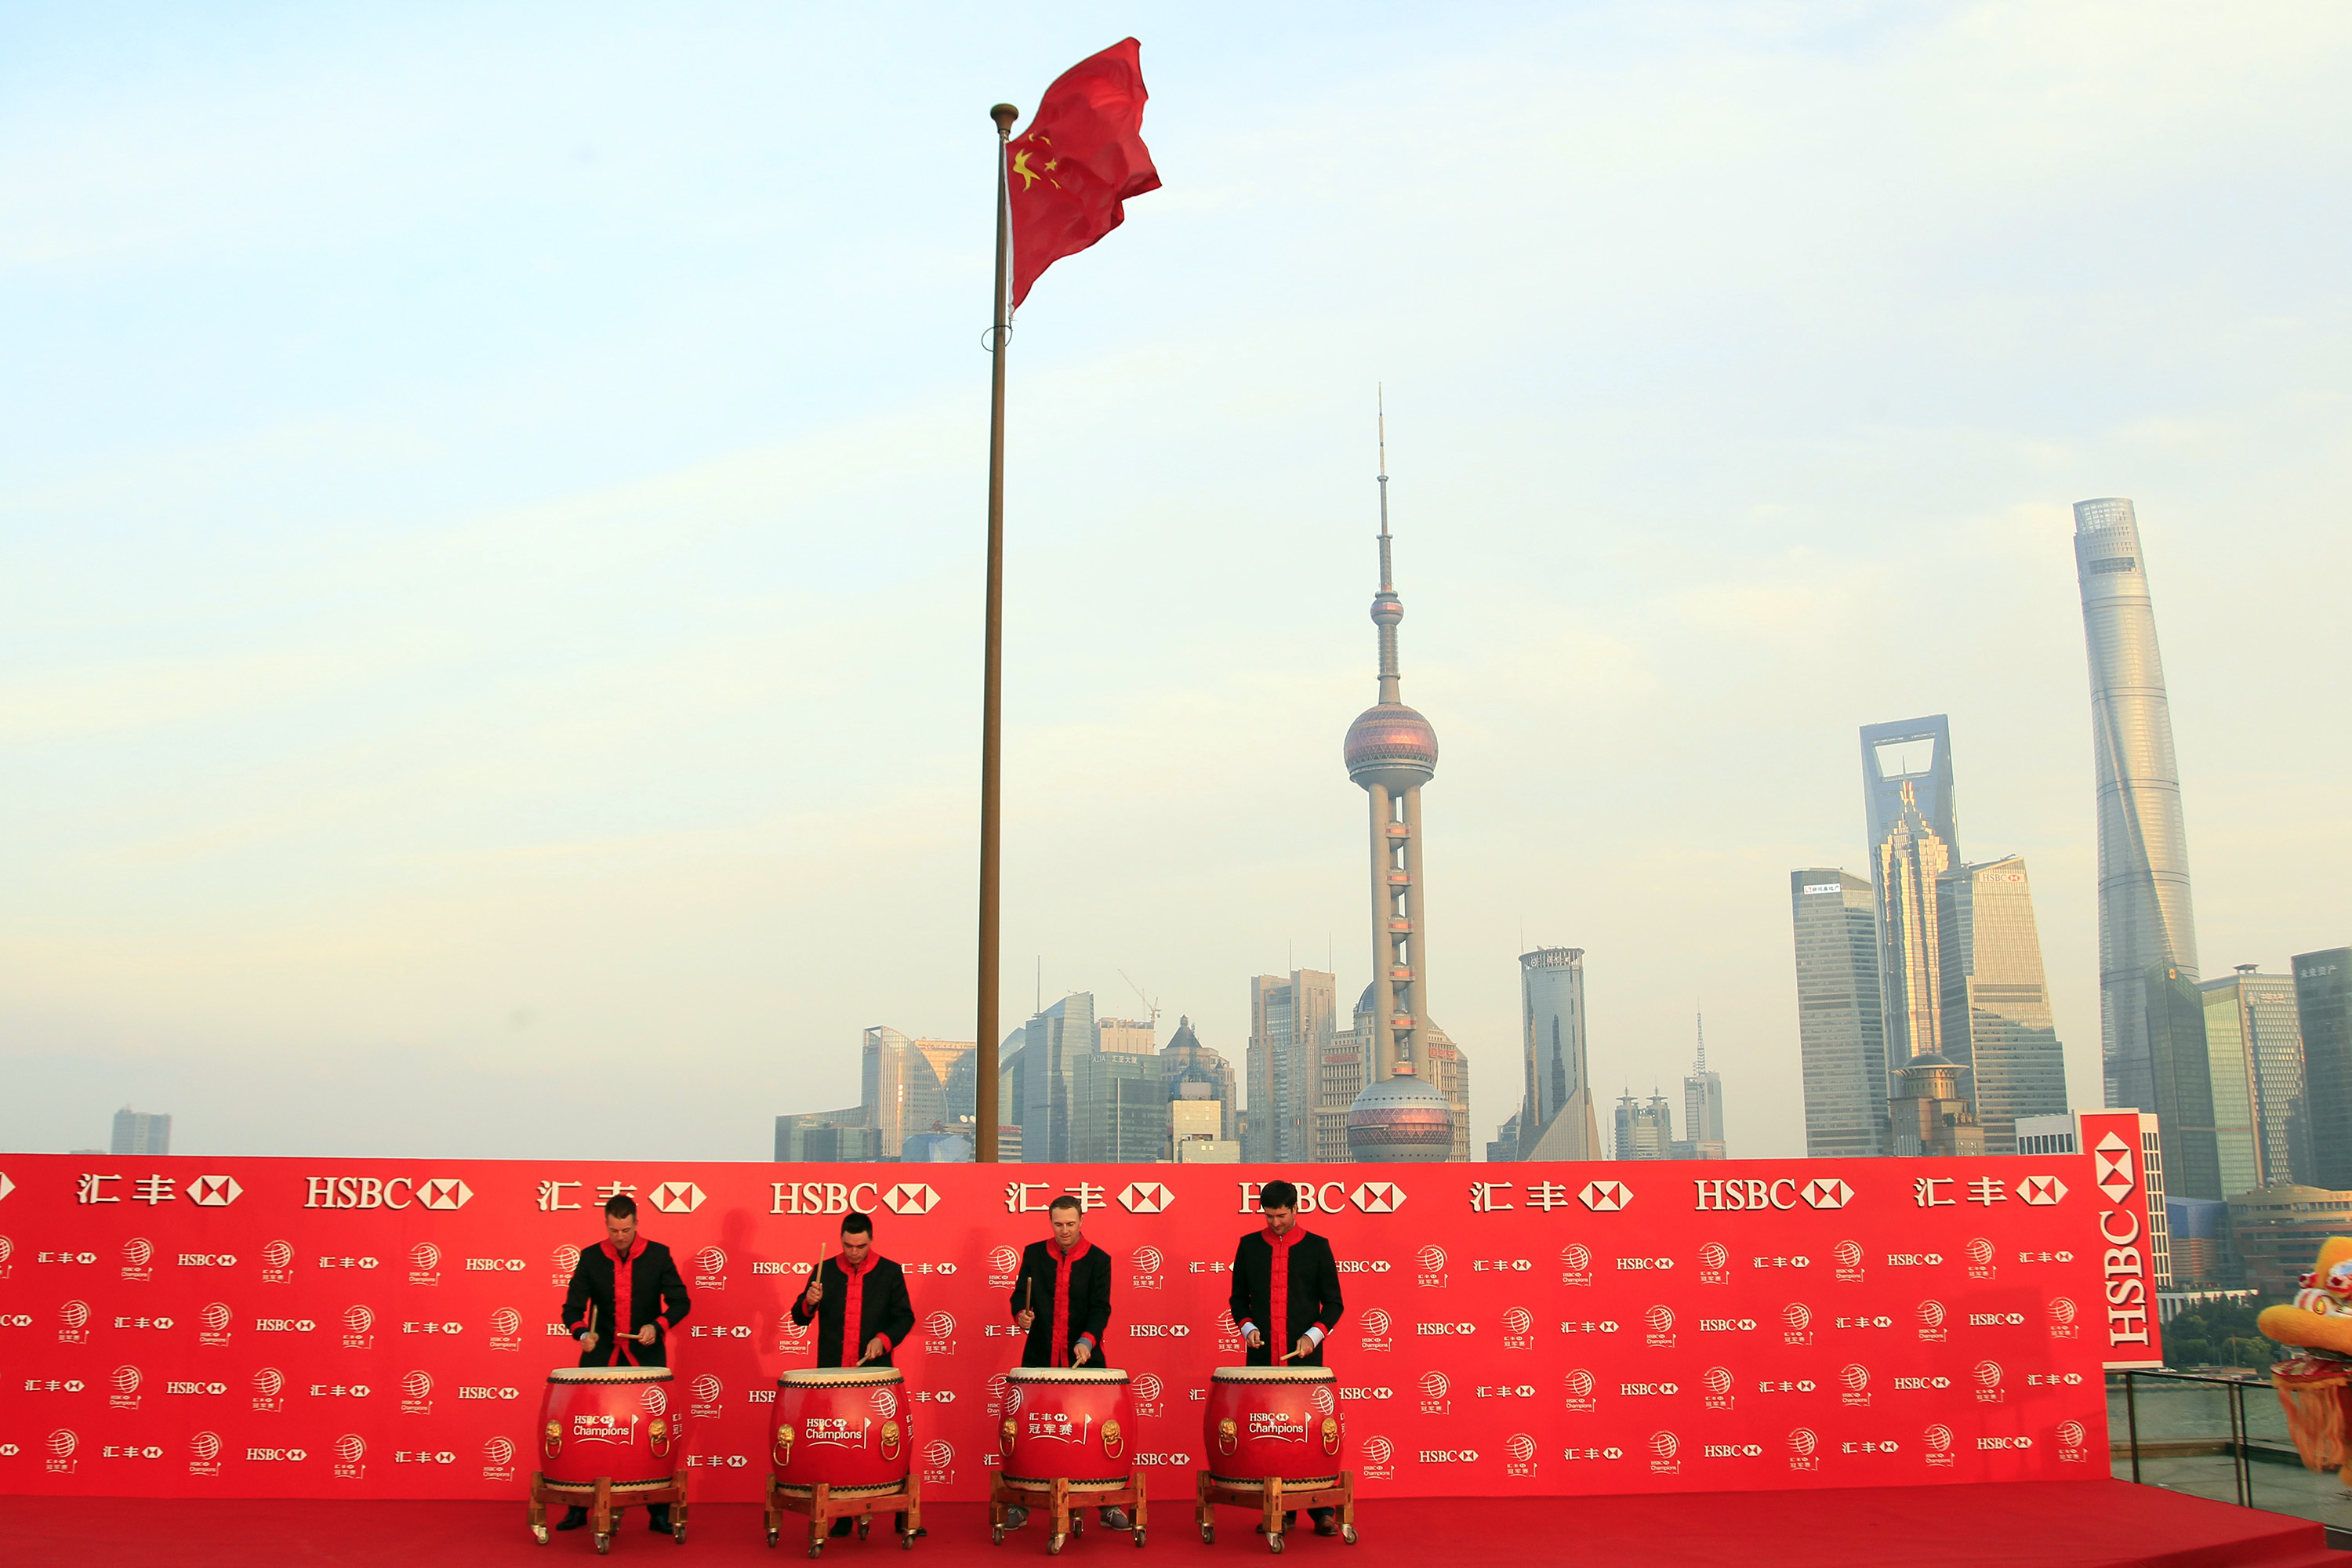 Golf players from left to right,  Henrik Stenson, Rickie Fowler, Jordan Spieth and Bubba Watson, drum during the HSBC Champions golf tournament photocall in Shanghai, China Thursday Nov. 3, 2015. (AP Photo)